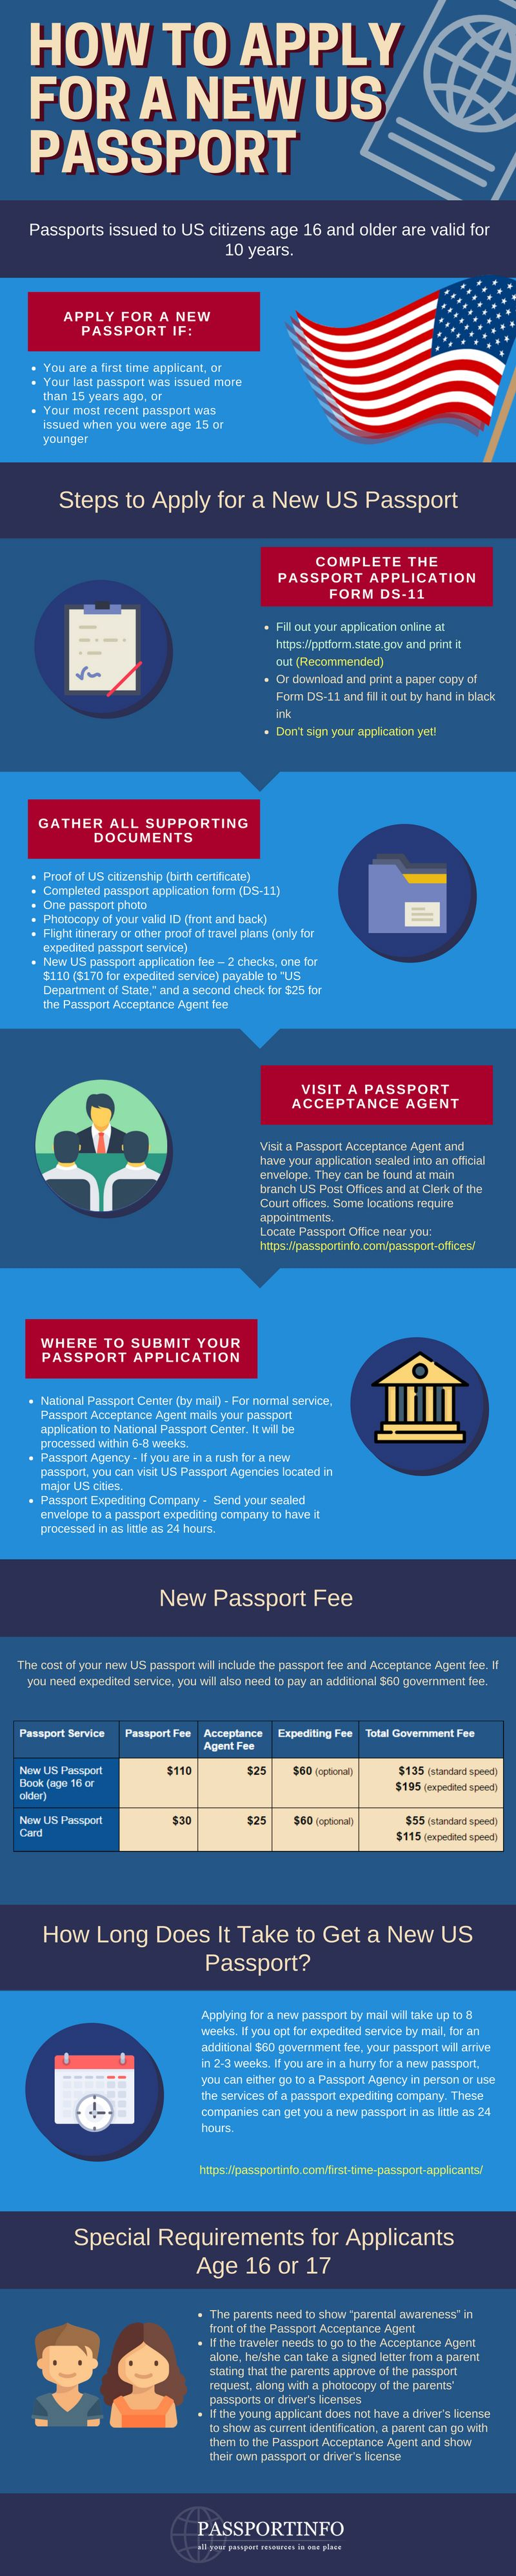 How To Renew Us Passport In  Simple Steps Infographic  Passport